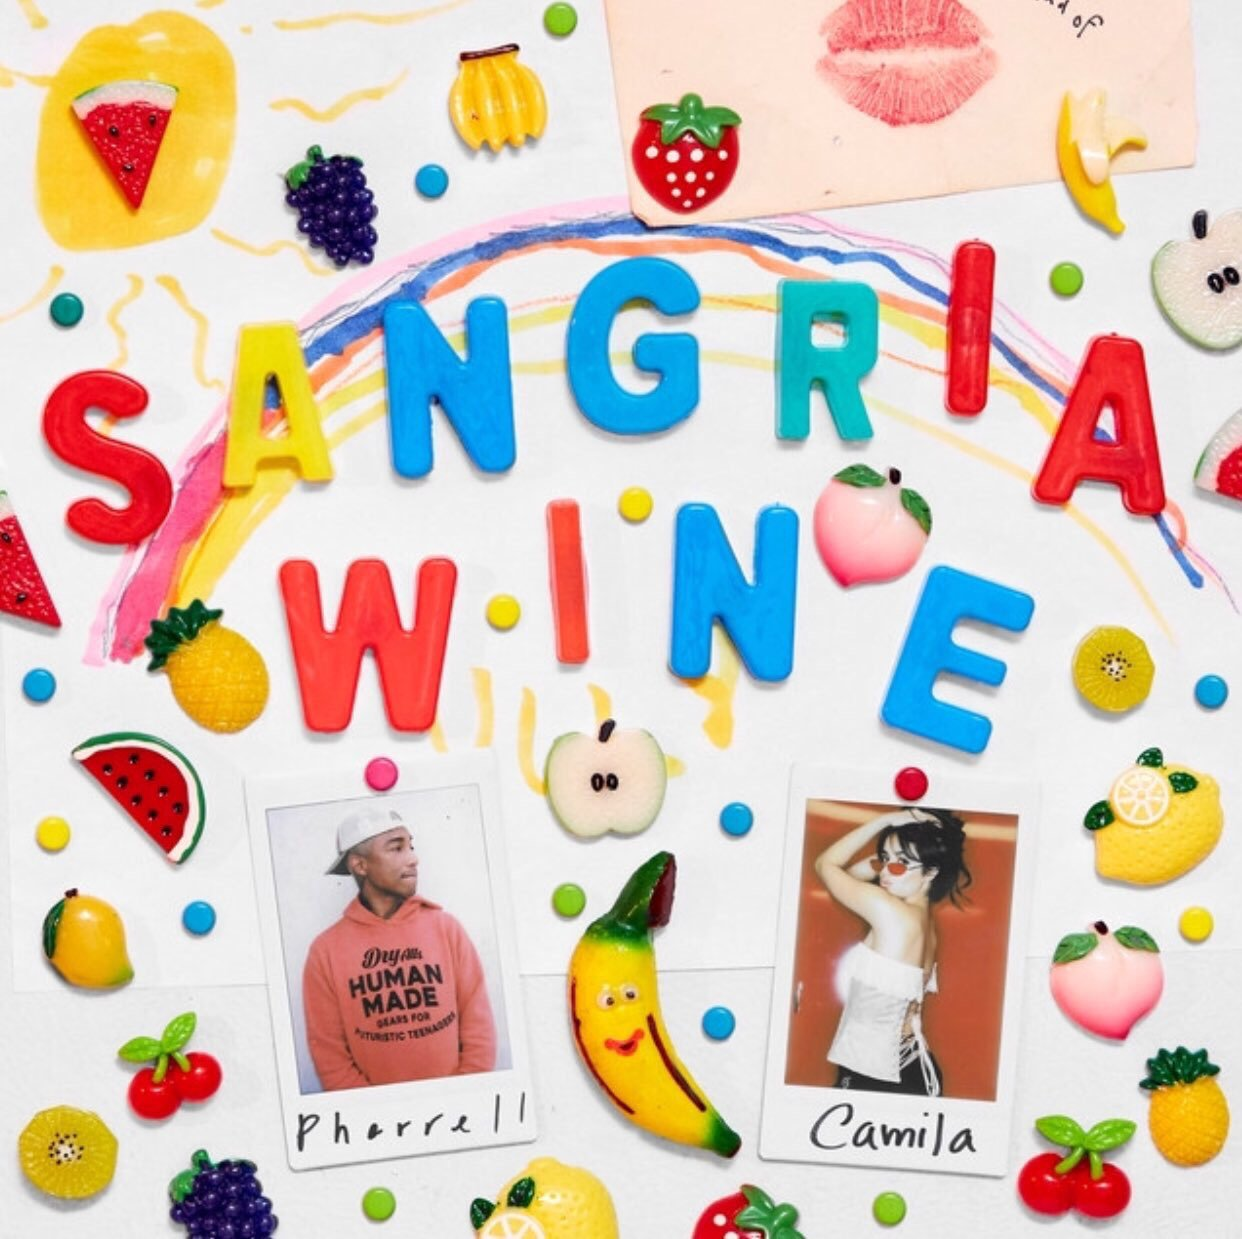 Despite not Impacting Pop Radio until June 5th, 'Sangria Wine' has already been added by 13 Pop Radio stations! https://t.co/Ij7MbguFV8